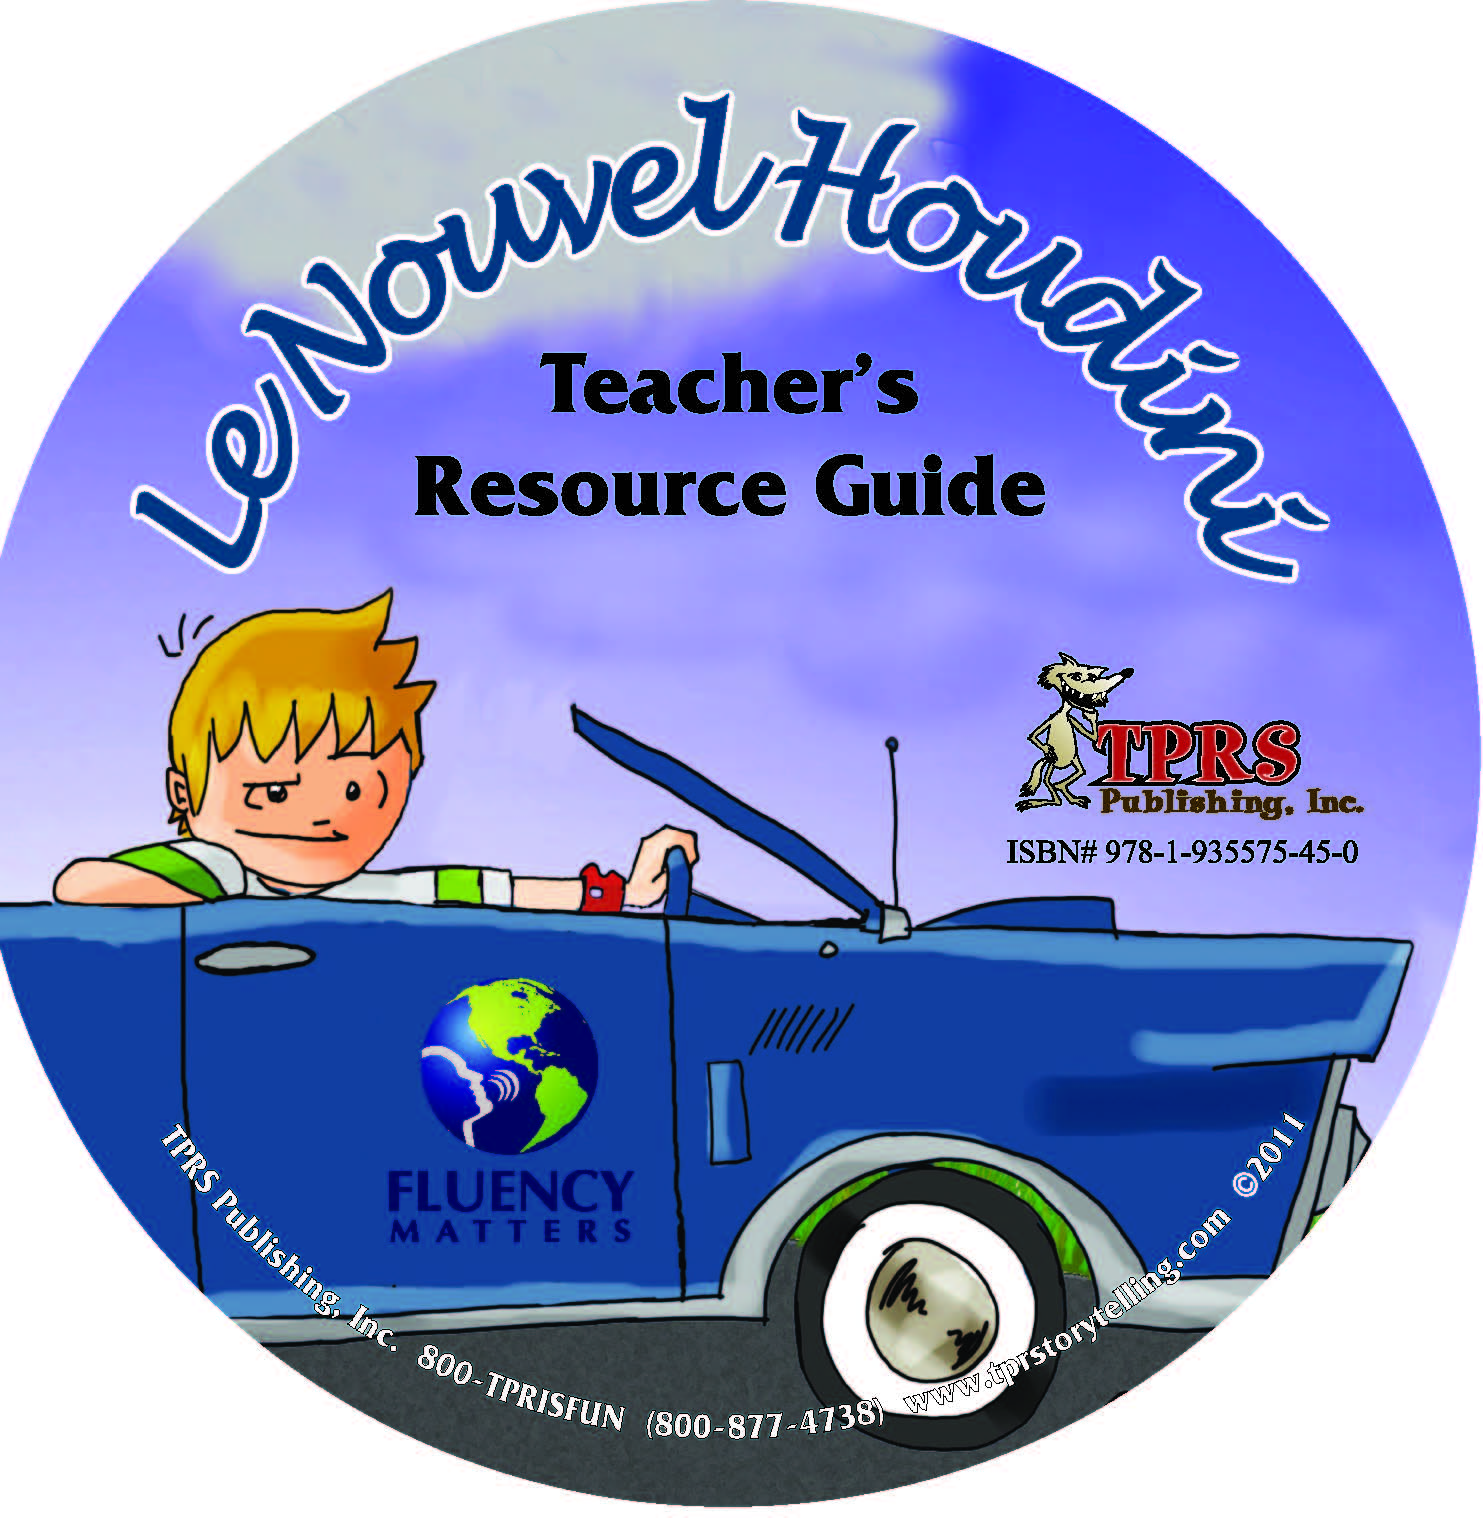 Le Nouvel Houdini – Teacher's Guide On CD